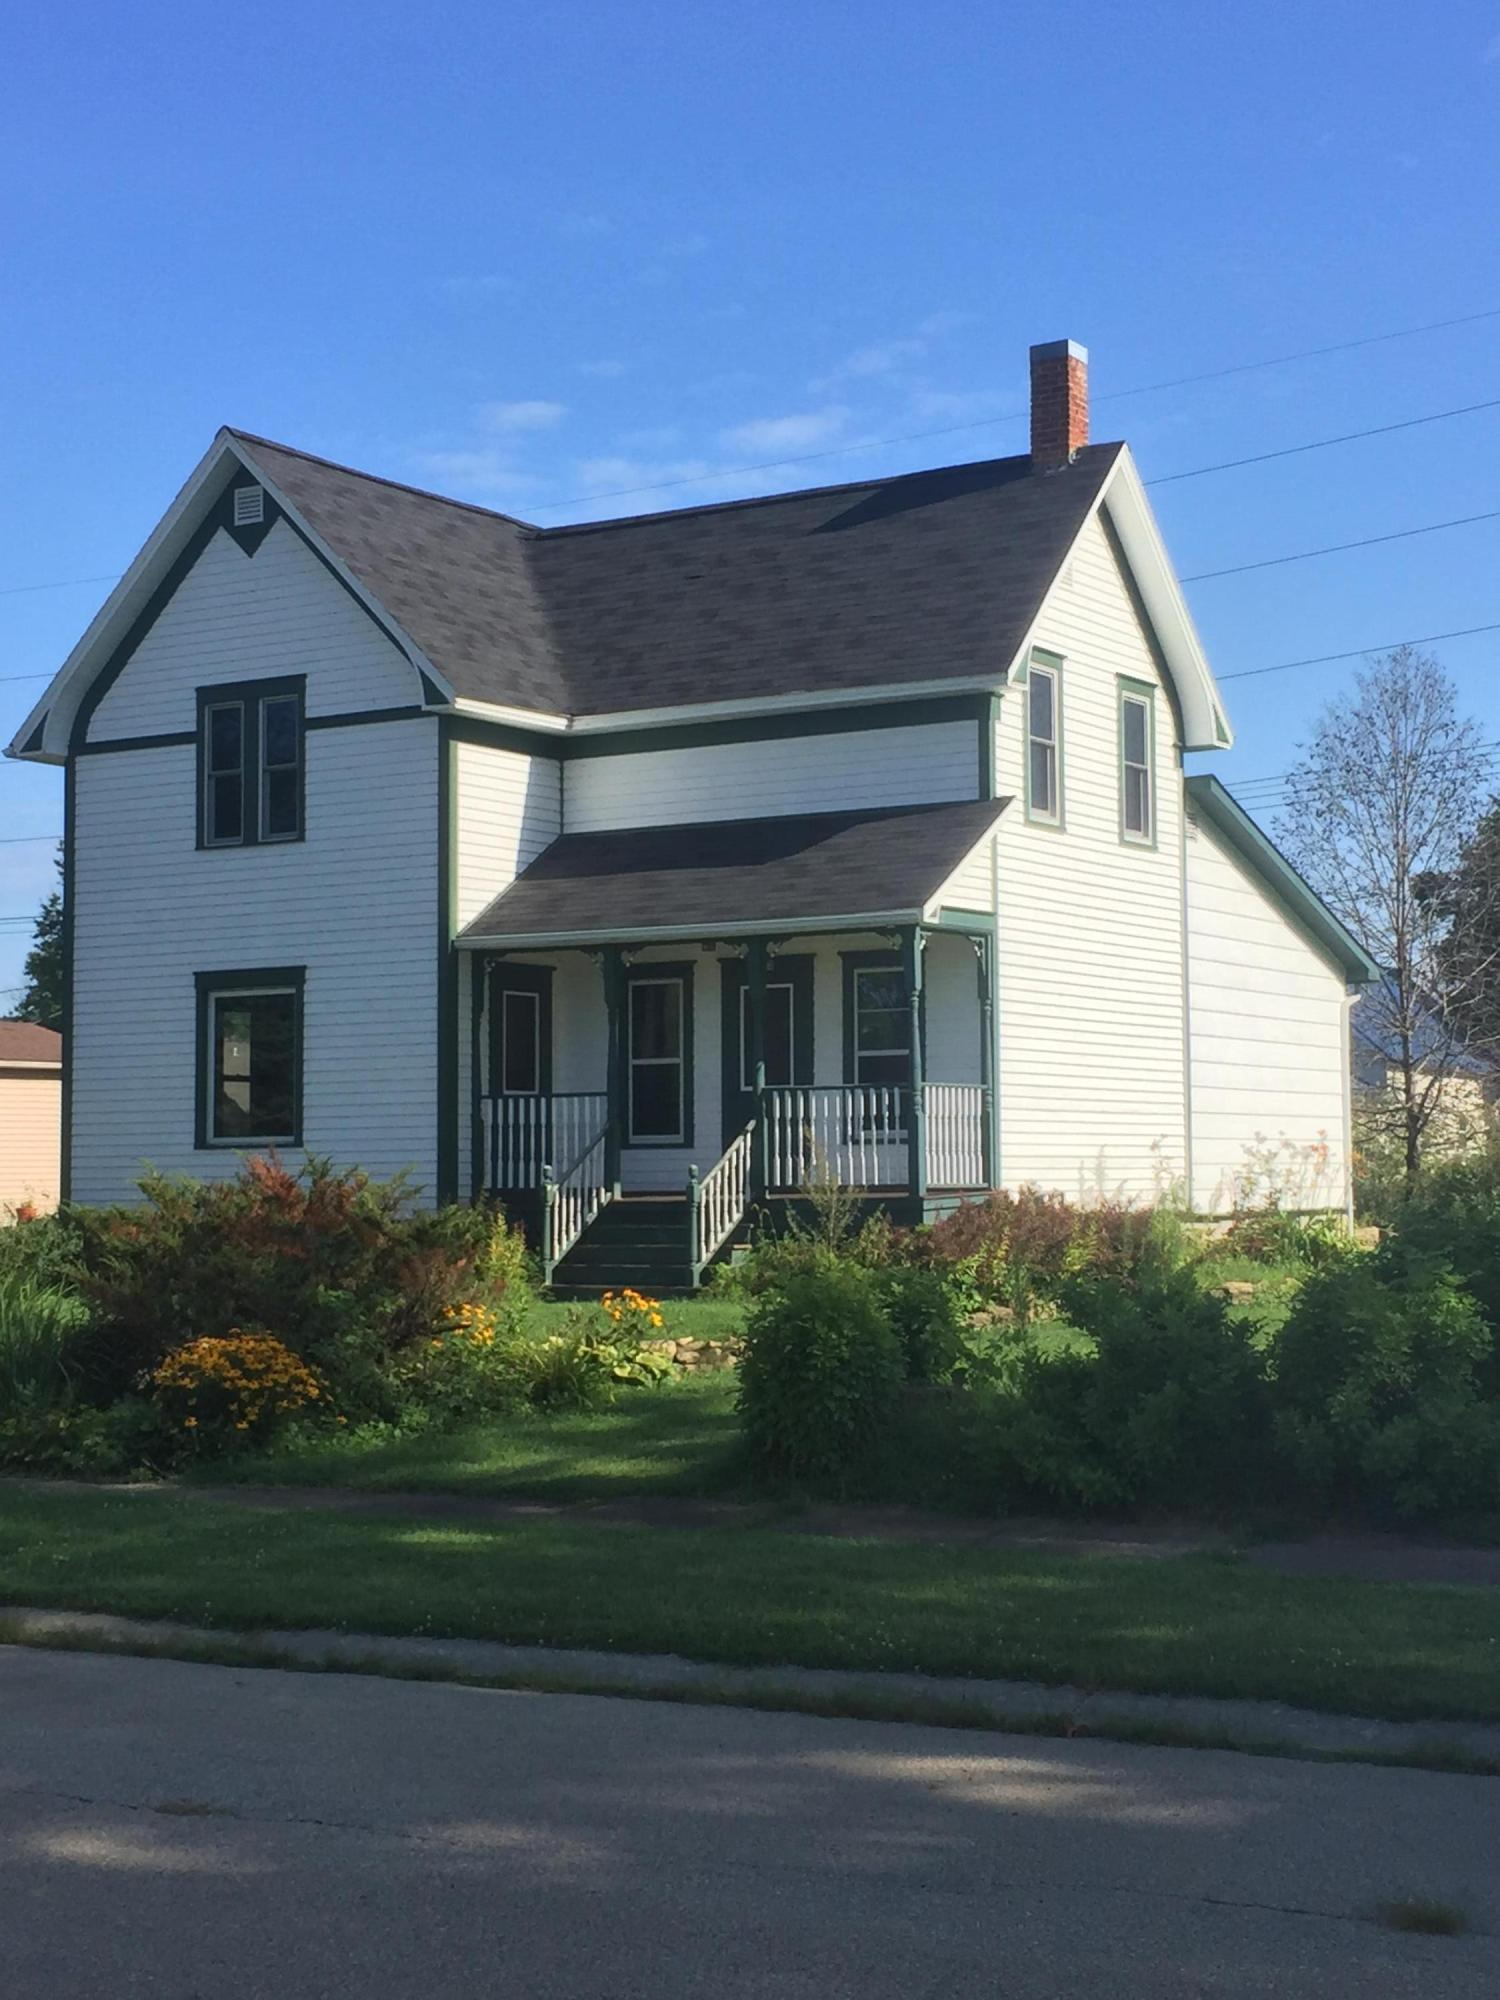 Photo of 212 PARK ST, Gays Mills, WI 54631